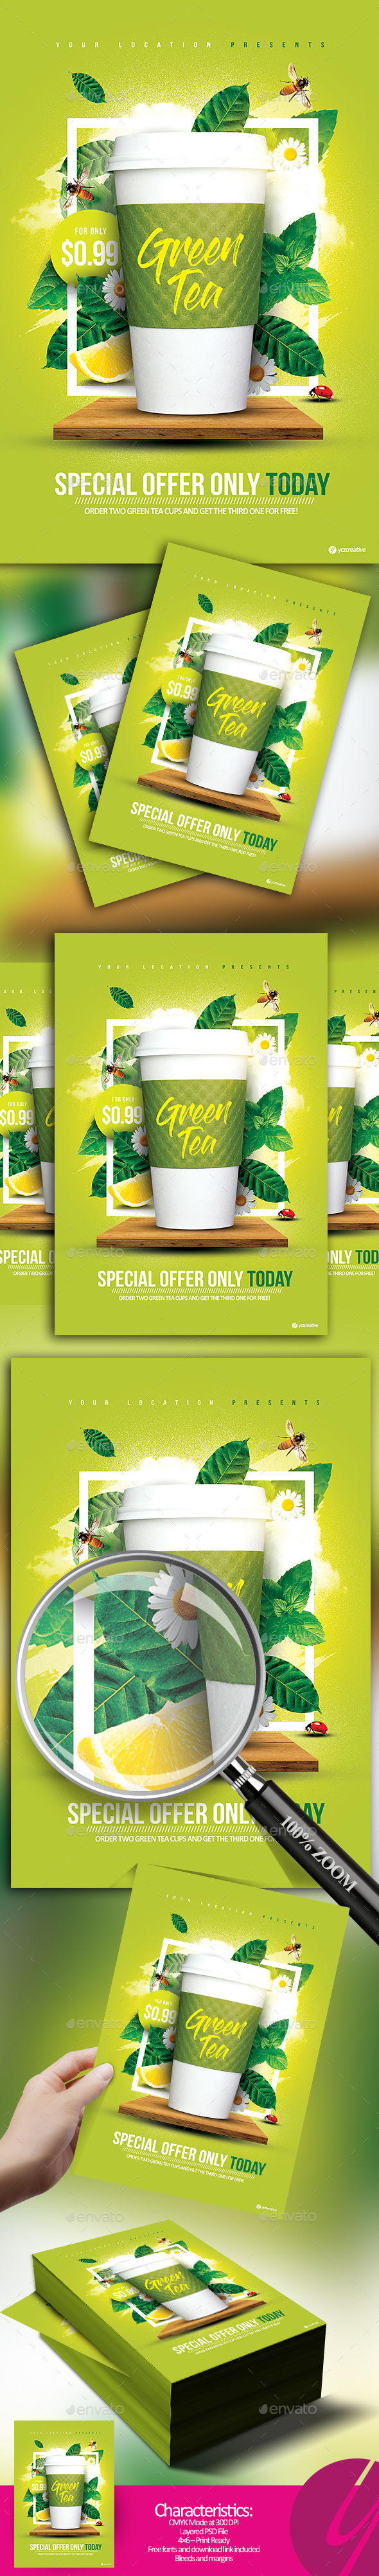 Green Tea Offer Flyer - Restaurant Flyers